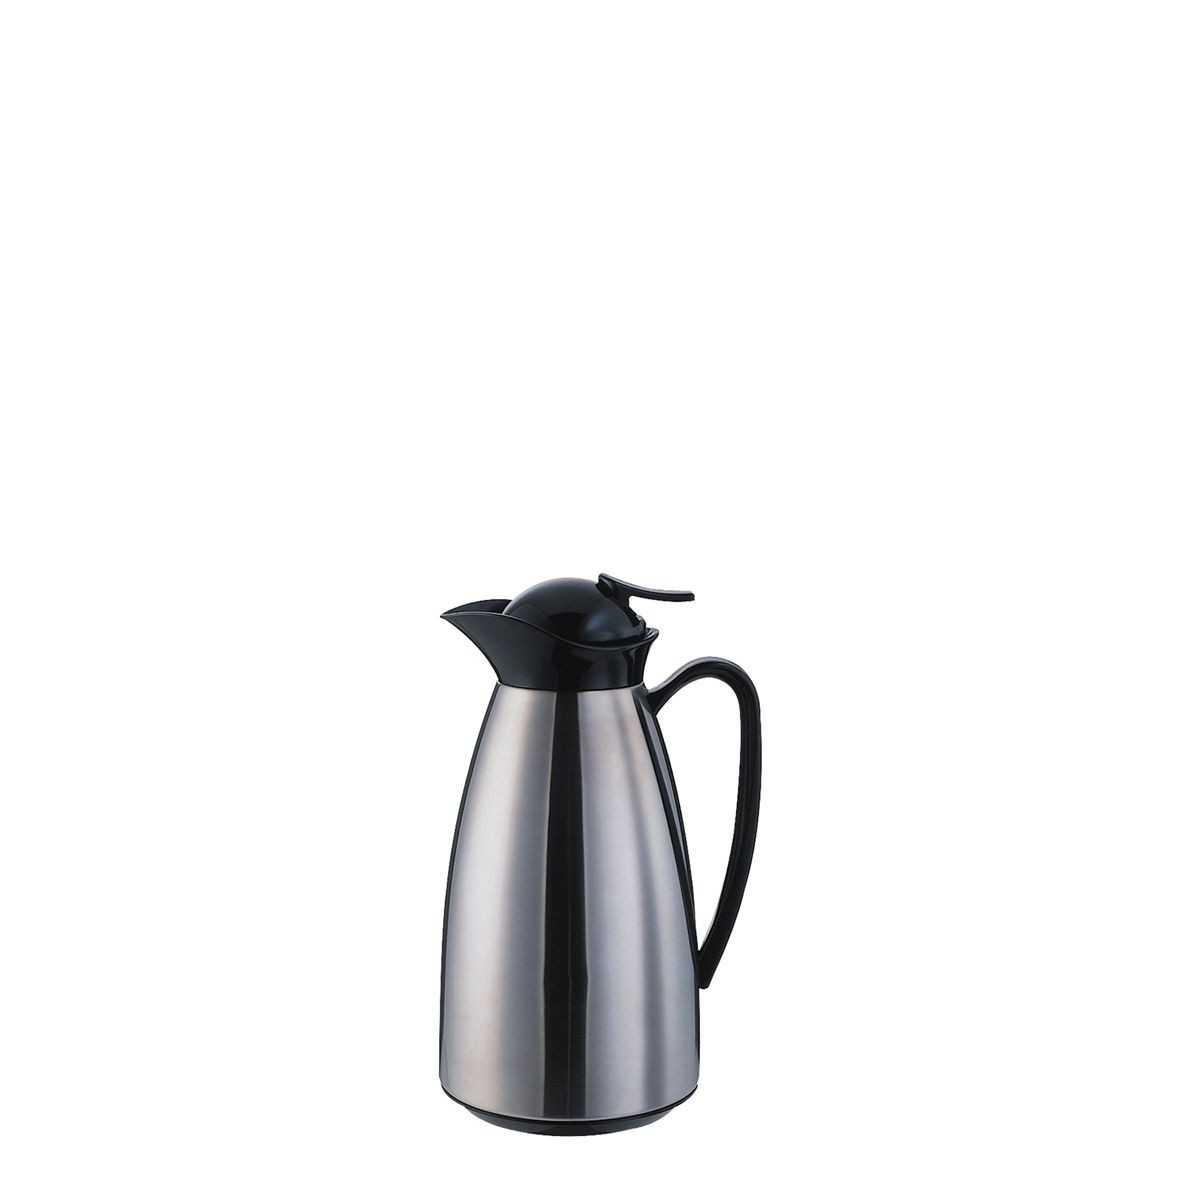 Service Ideas CJ10SS Classy Vacuum Carafe, Brushed Stainless with Black 1 Liter